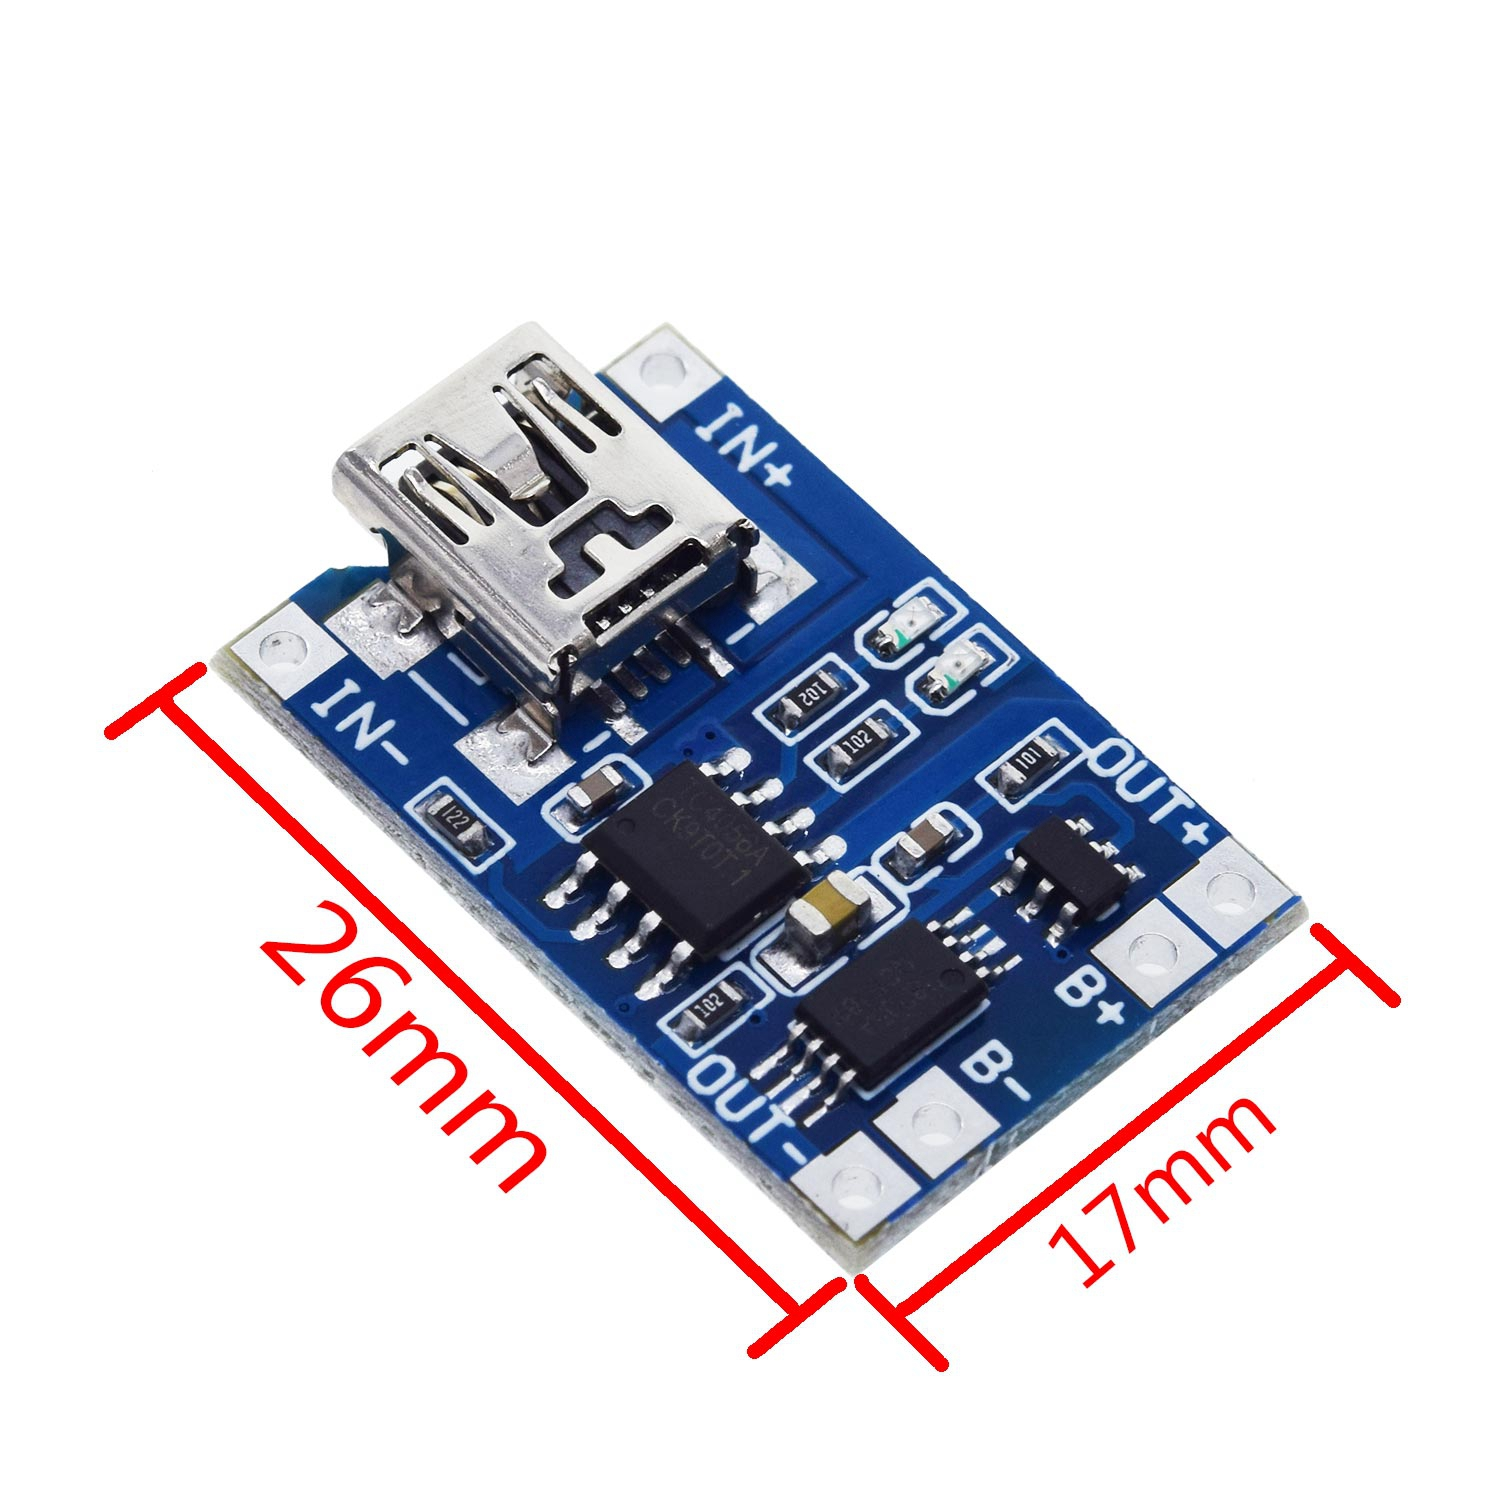 5pcs Micro/Type-c USB 5V 1A 18650 TP4056 Lithium Battery Charger Module Charging Board With Protection Dual Functions 1A Li-ion 4